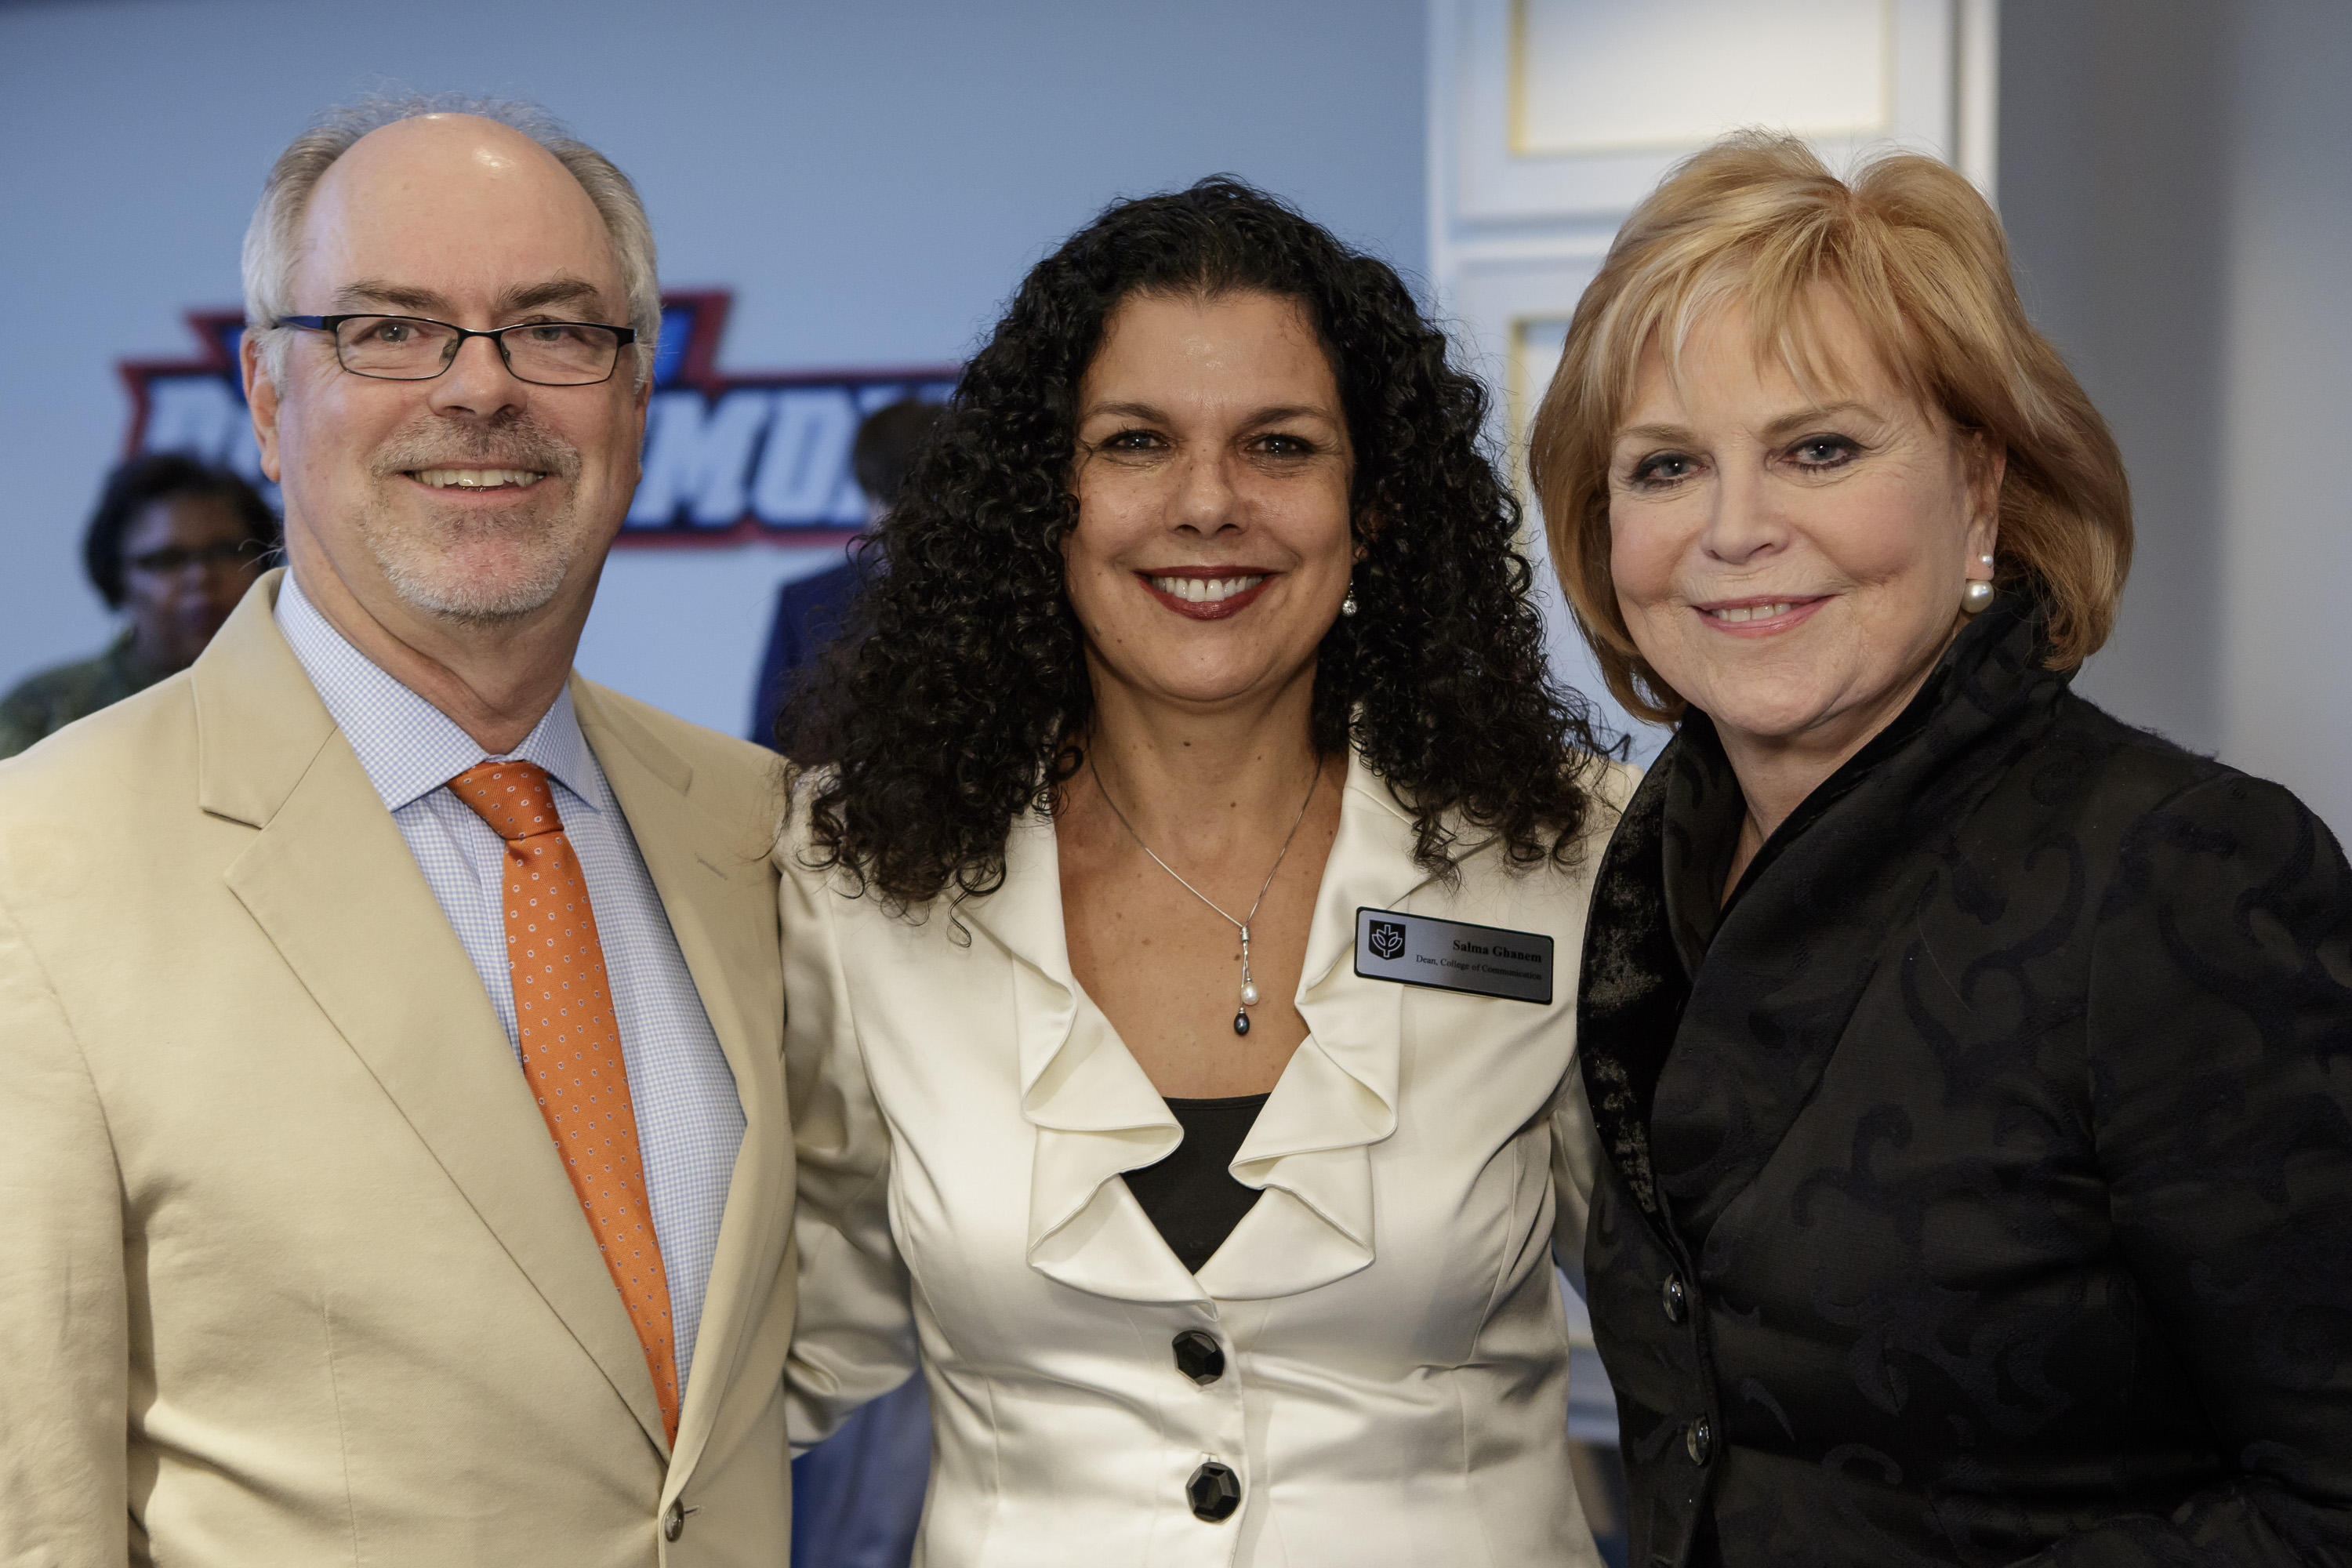 Don Moseley, Dean Salma Ghanem and Carol Marin